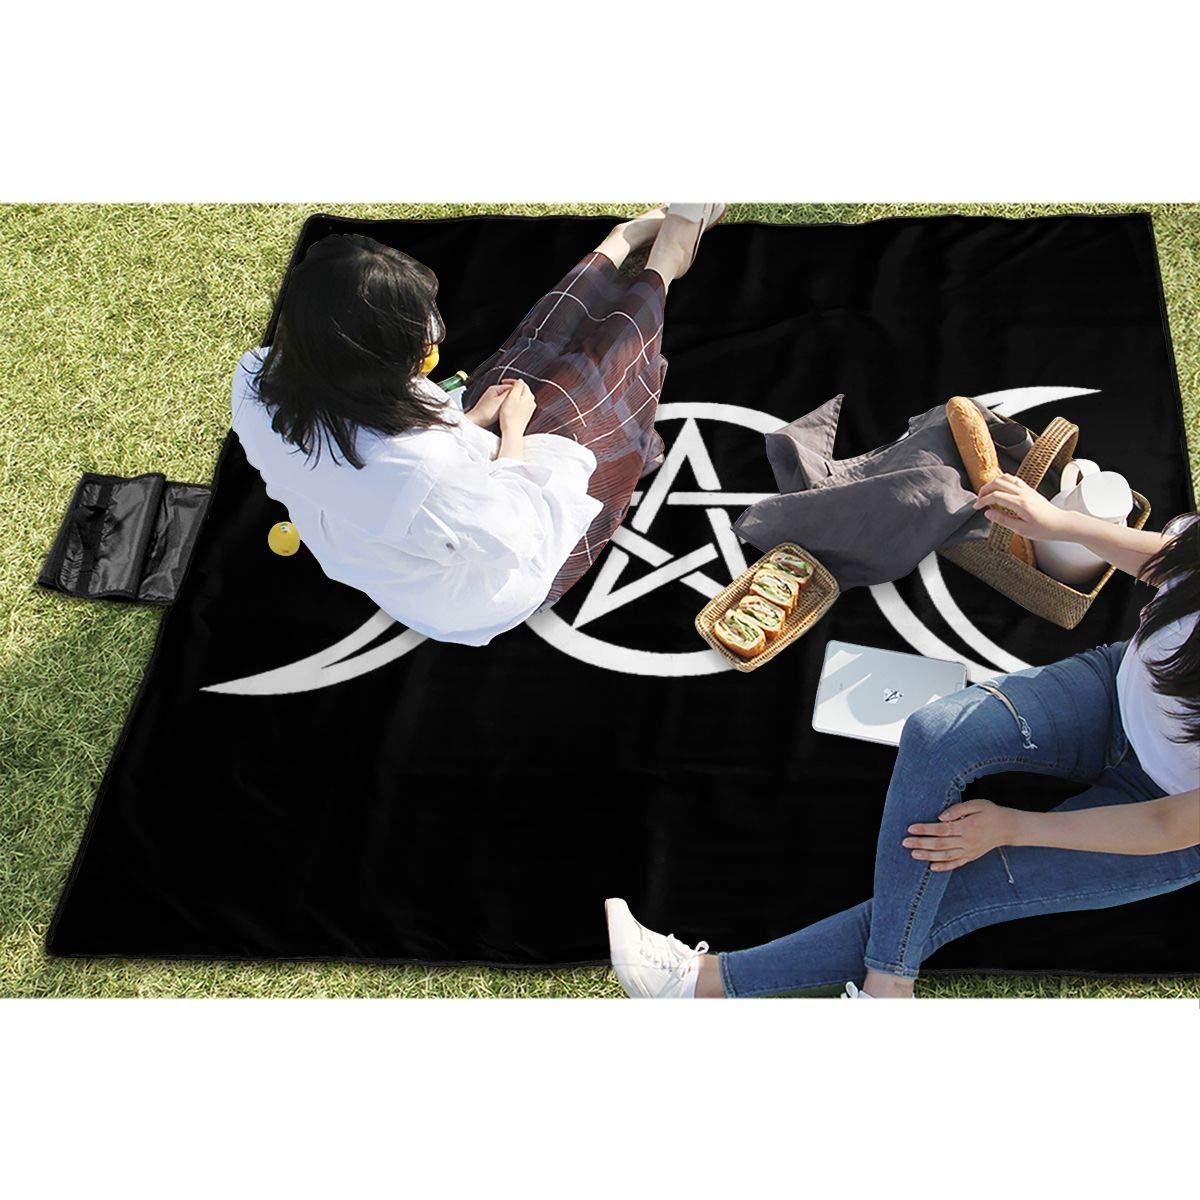 Socksforu Wicca Triple Moon Pentacle Pagan Extra Large Picnic Blanket 57 x59 Outdoor Water Resistant Sandless Picnic Blanket Mat with Tote Bag for Travel Picnic Hiking